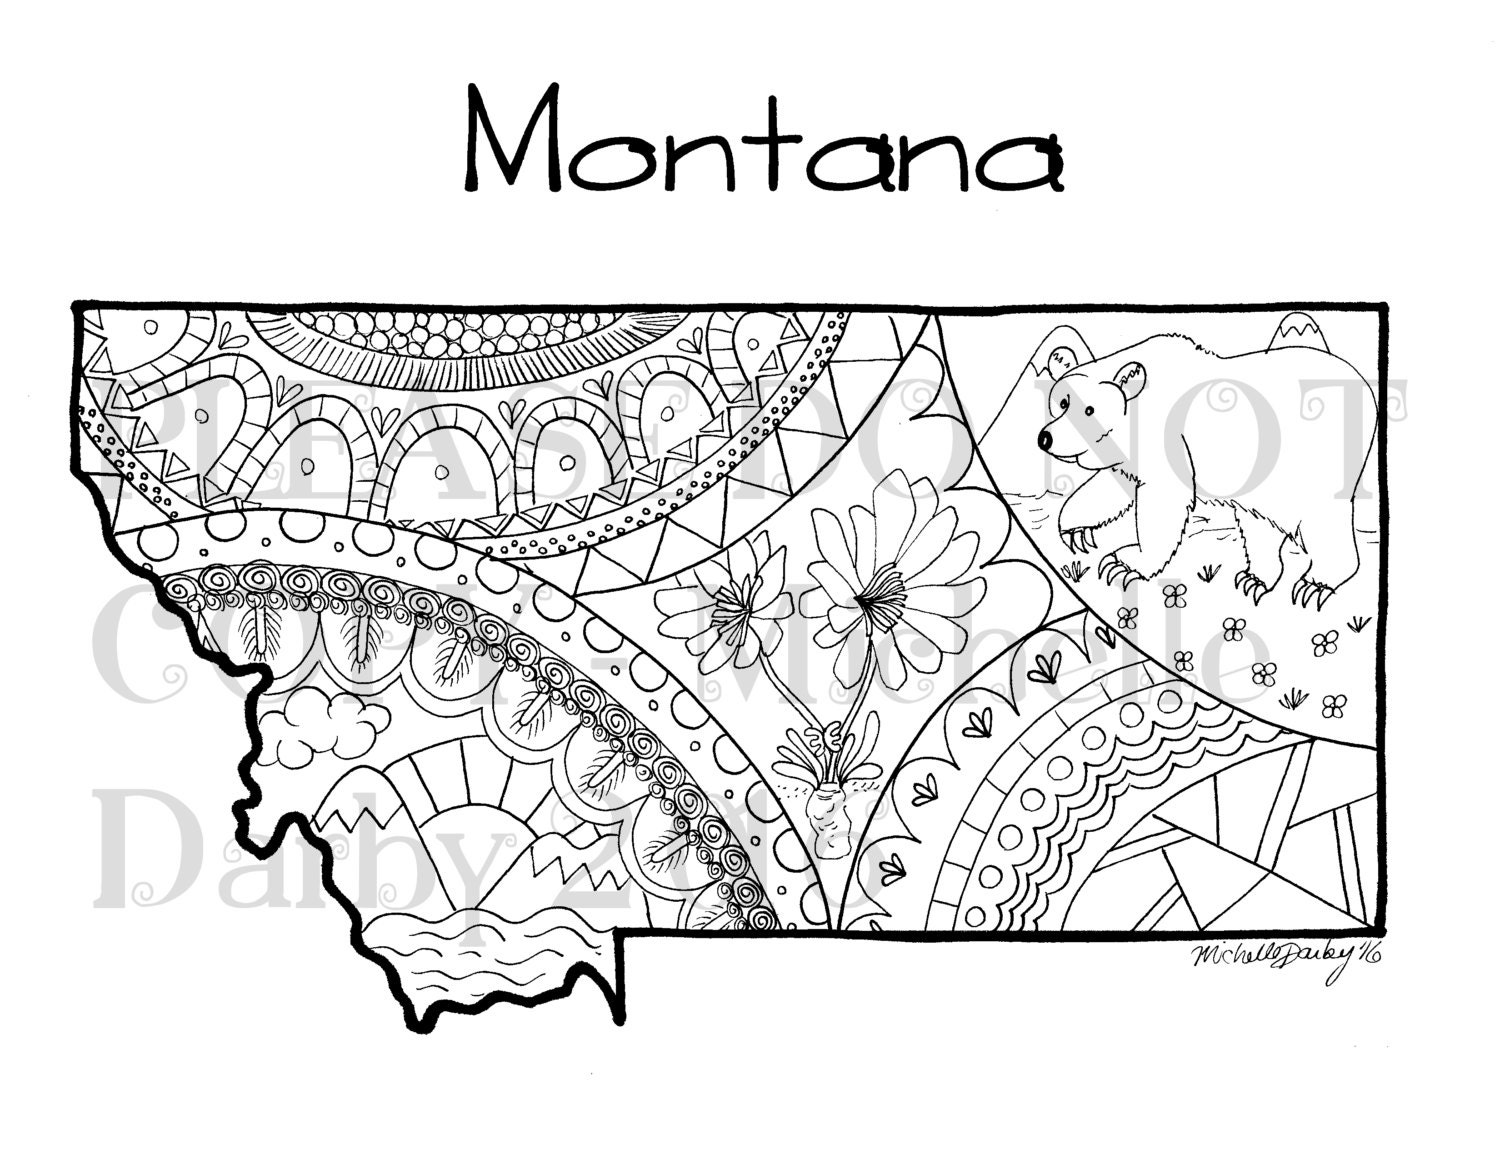 Montana map outline colouring page for Montana coloring pages